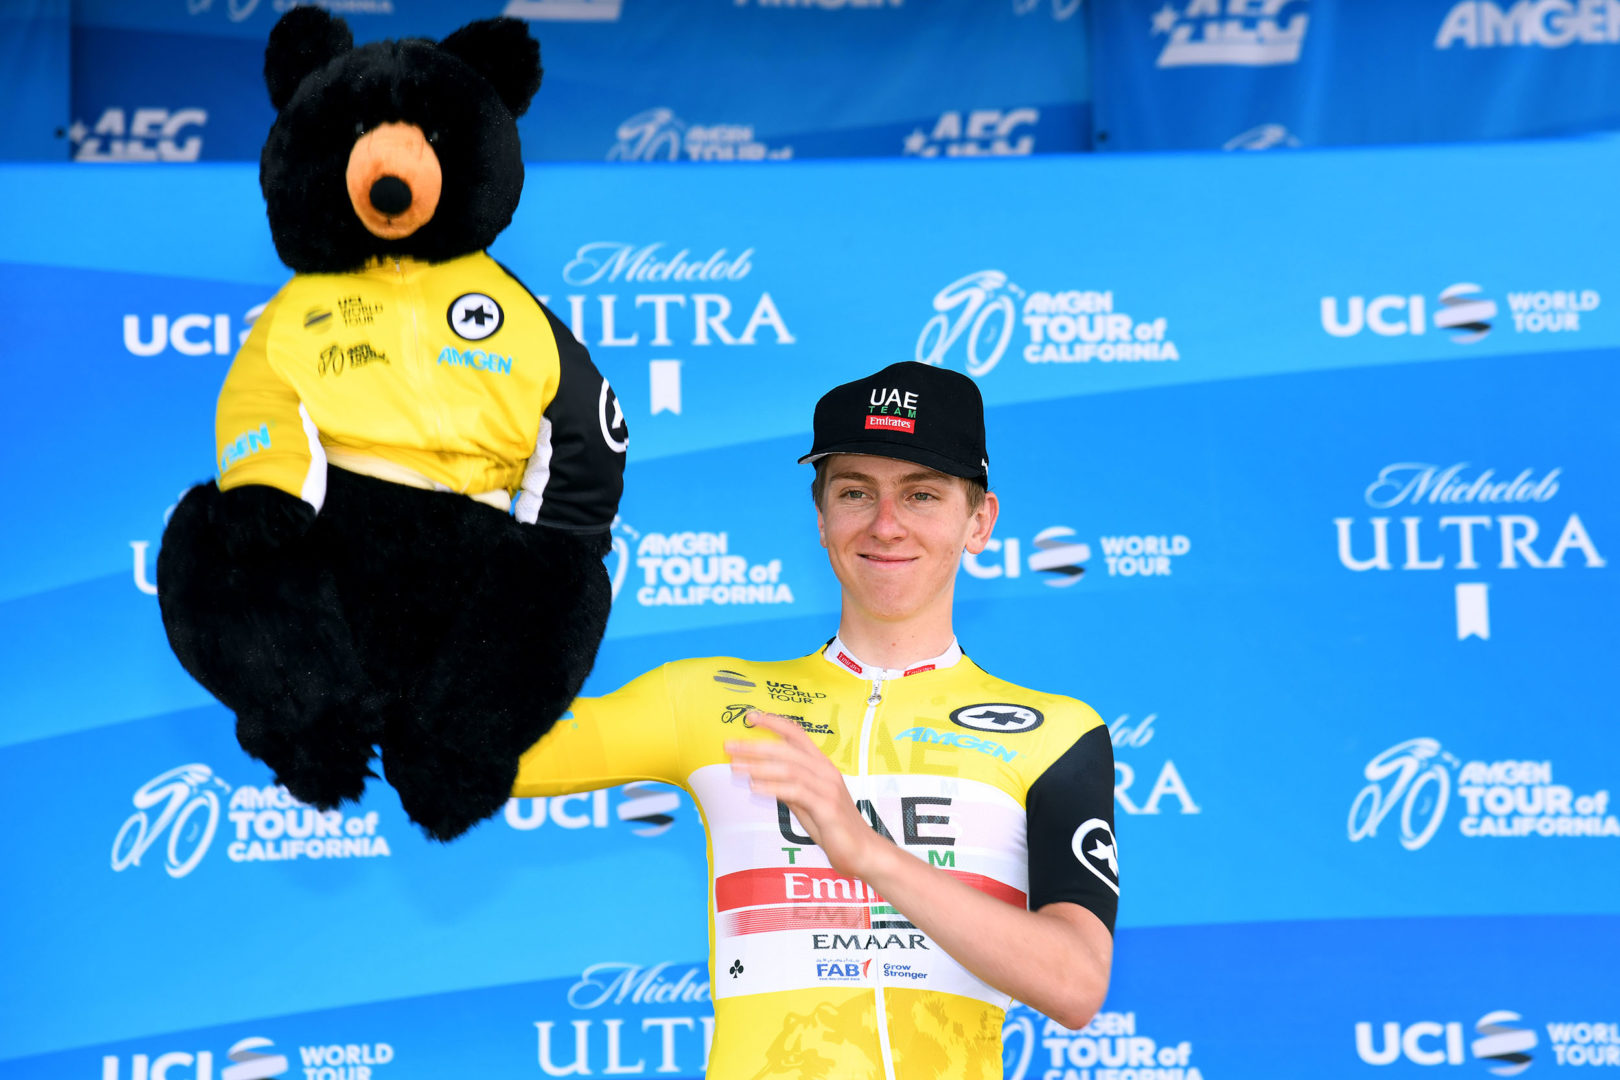 PASADENA, CALIFORNIA - MAY 18:  Podium / Celebration / Amgen Race Leader Jersey / Tadej Pogacar of Slovenia riding for UAE Team Emirates and overall winner / during the 14th Amgen Tour of California 2019, Stage 7 a 126km stage from Santa Clarita to Pasadena / #AmgenTOC / @AmgenTOC / on May 18, 2019 in Pasadena, California. (Photo by Harry How/Getty Images)